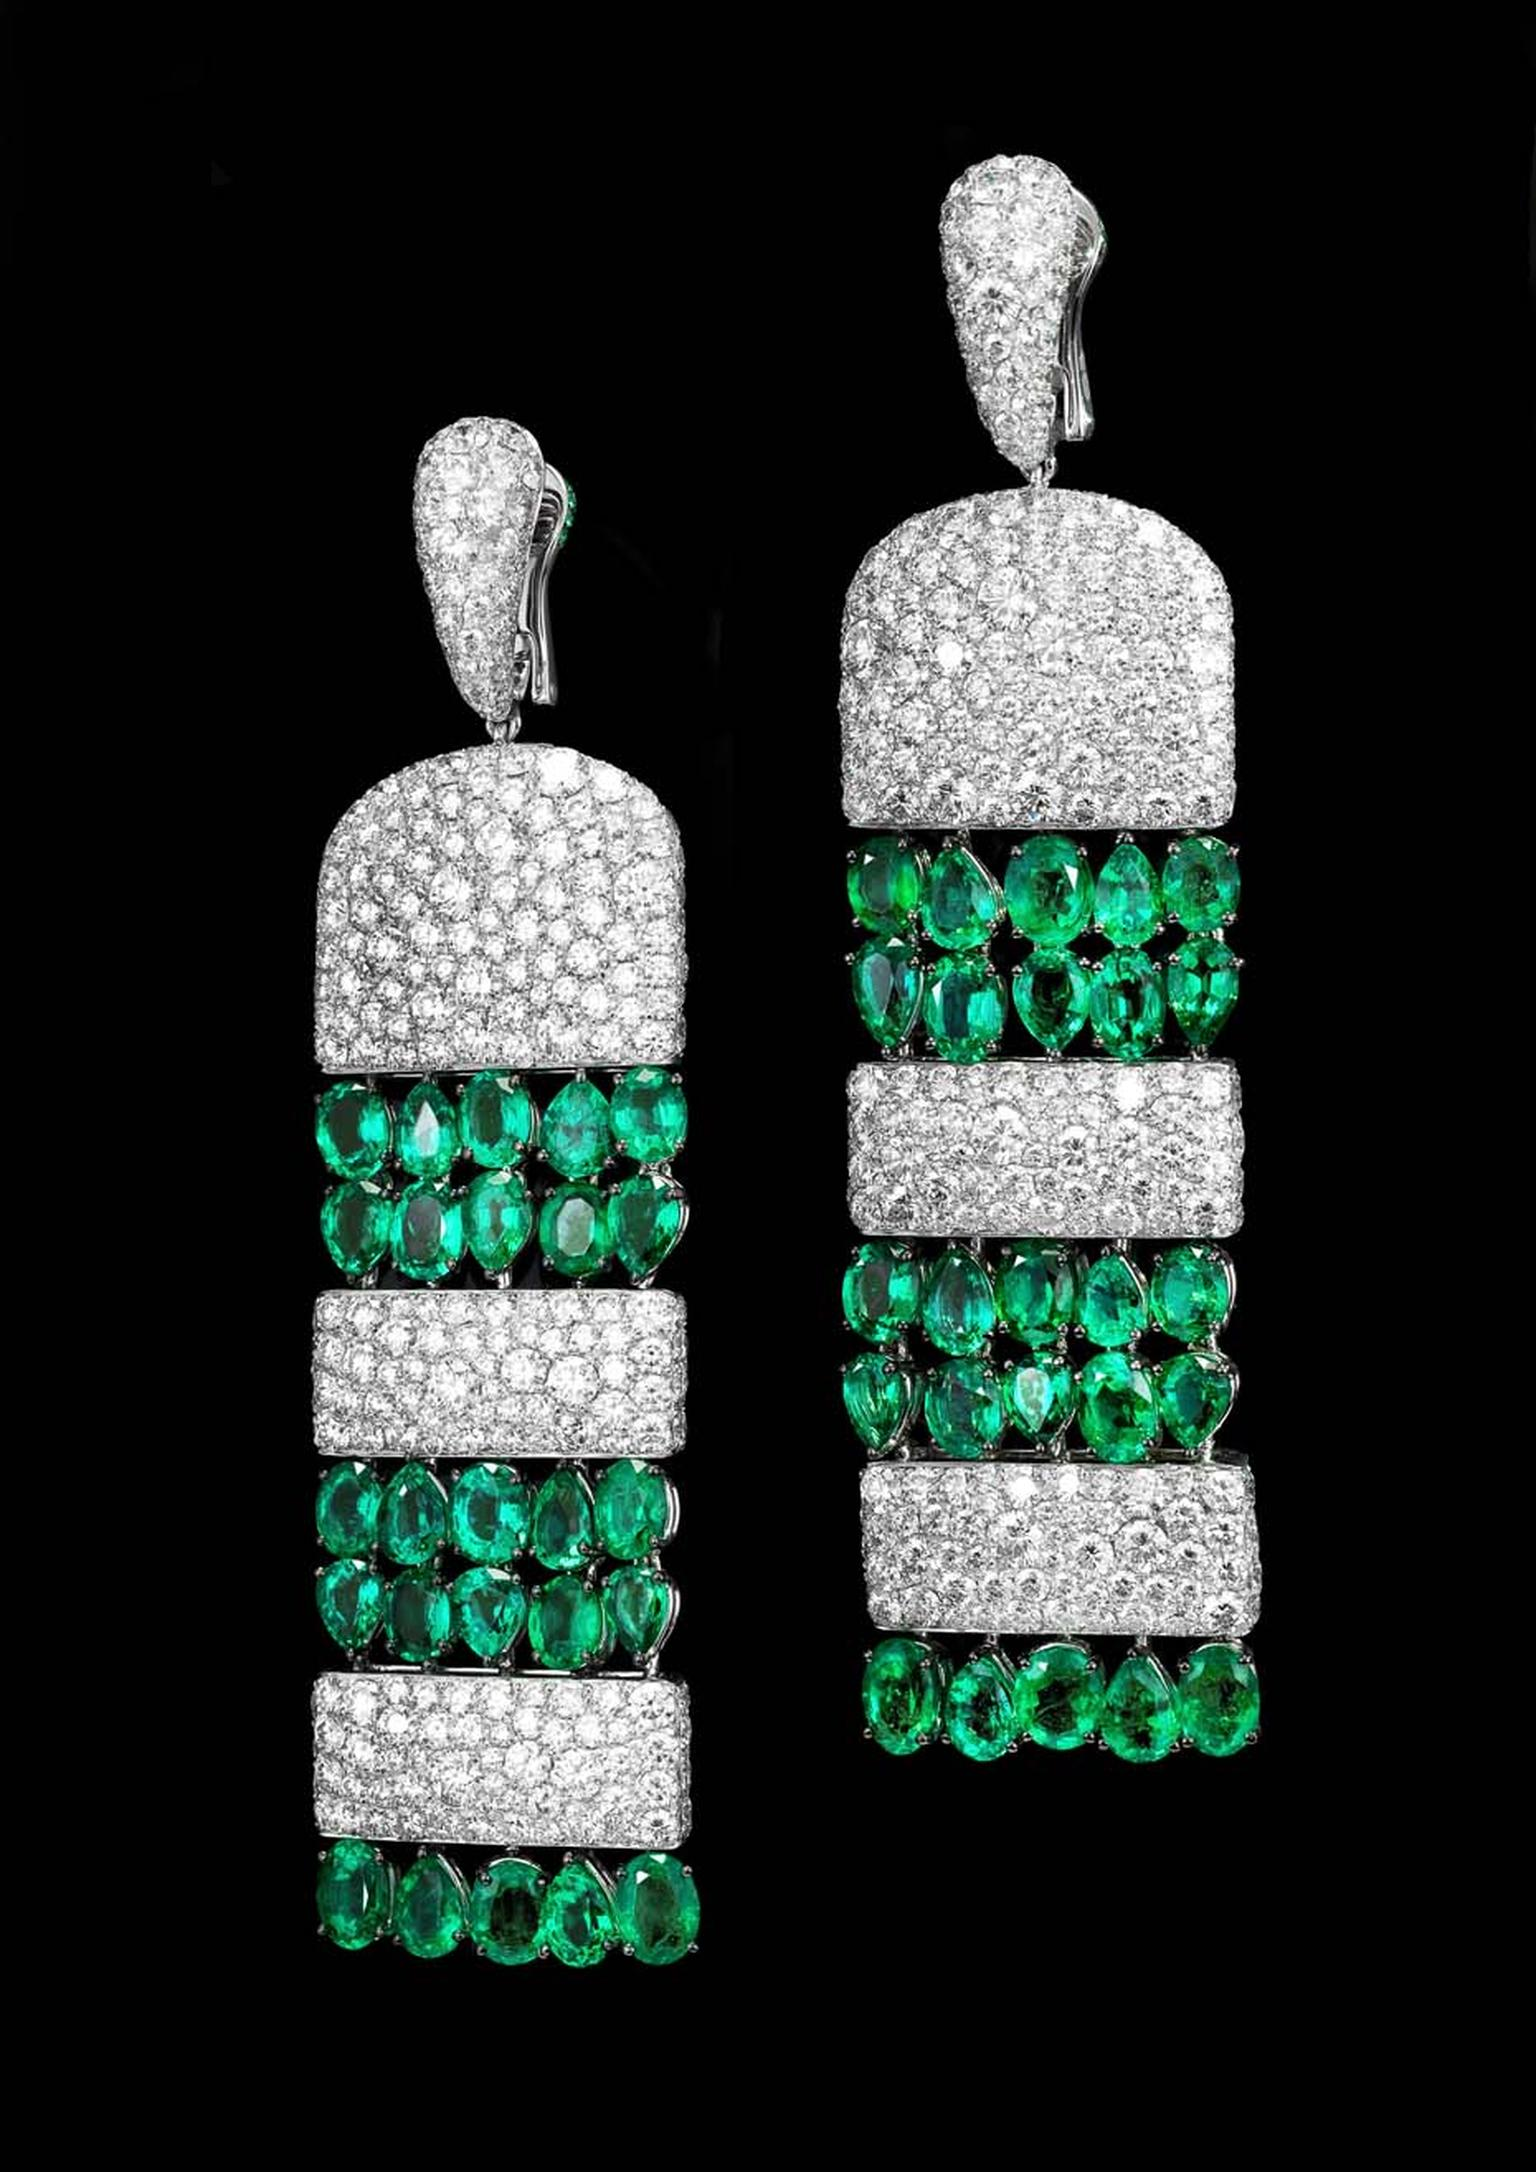 The de GRISOGONO white gold earrings featuring 50 pear-cut emeralds and 726 white diamonds worn by Rosie Huntington Whiteley to the de GRISOGONO party in Cannes